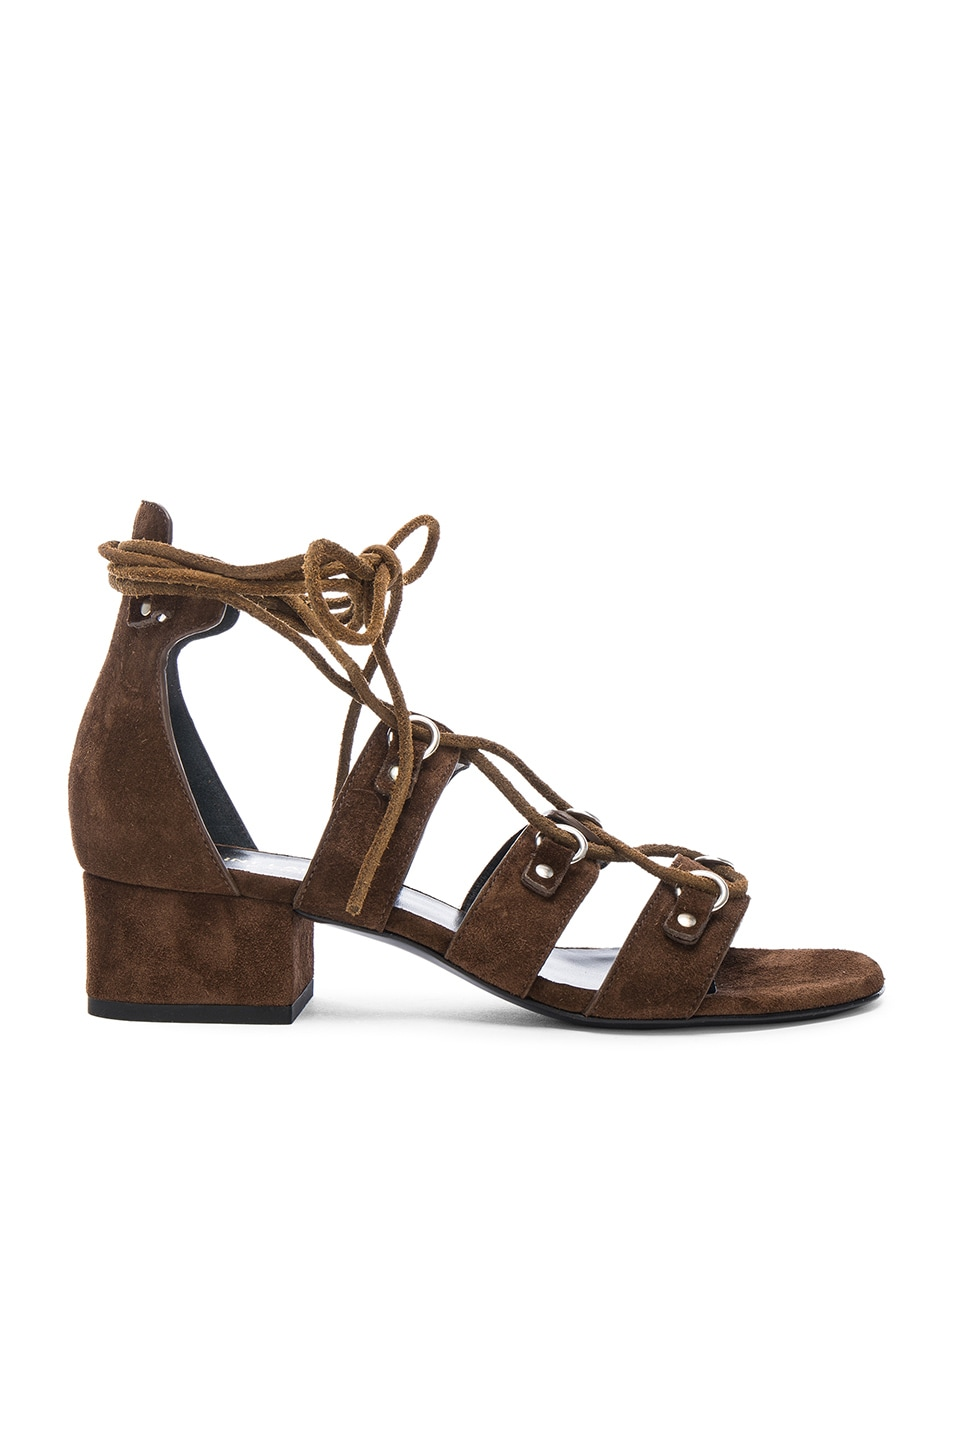 Image 1 of Saint Laurent Babies Suede Lace Up Sandals in Brown cd710e10a909